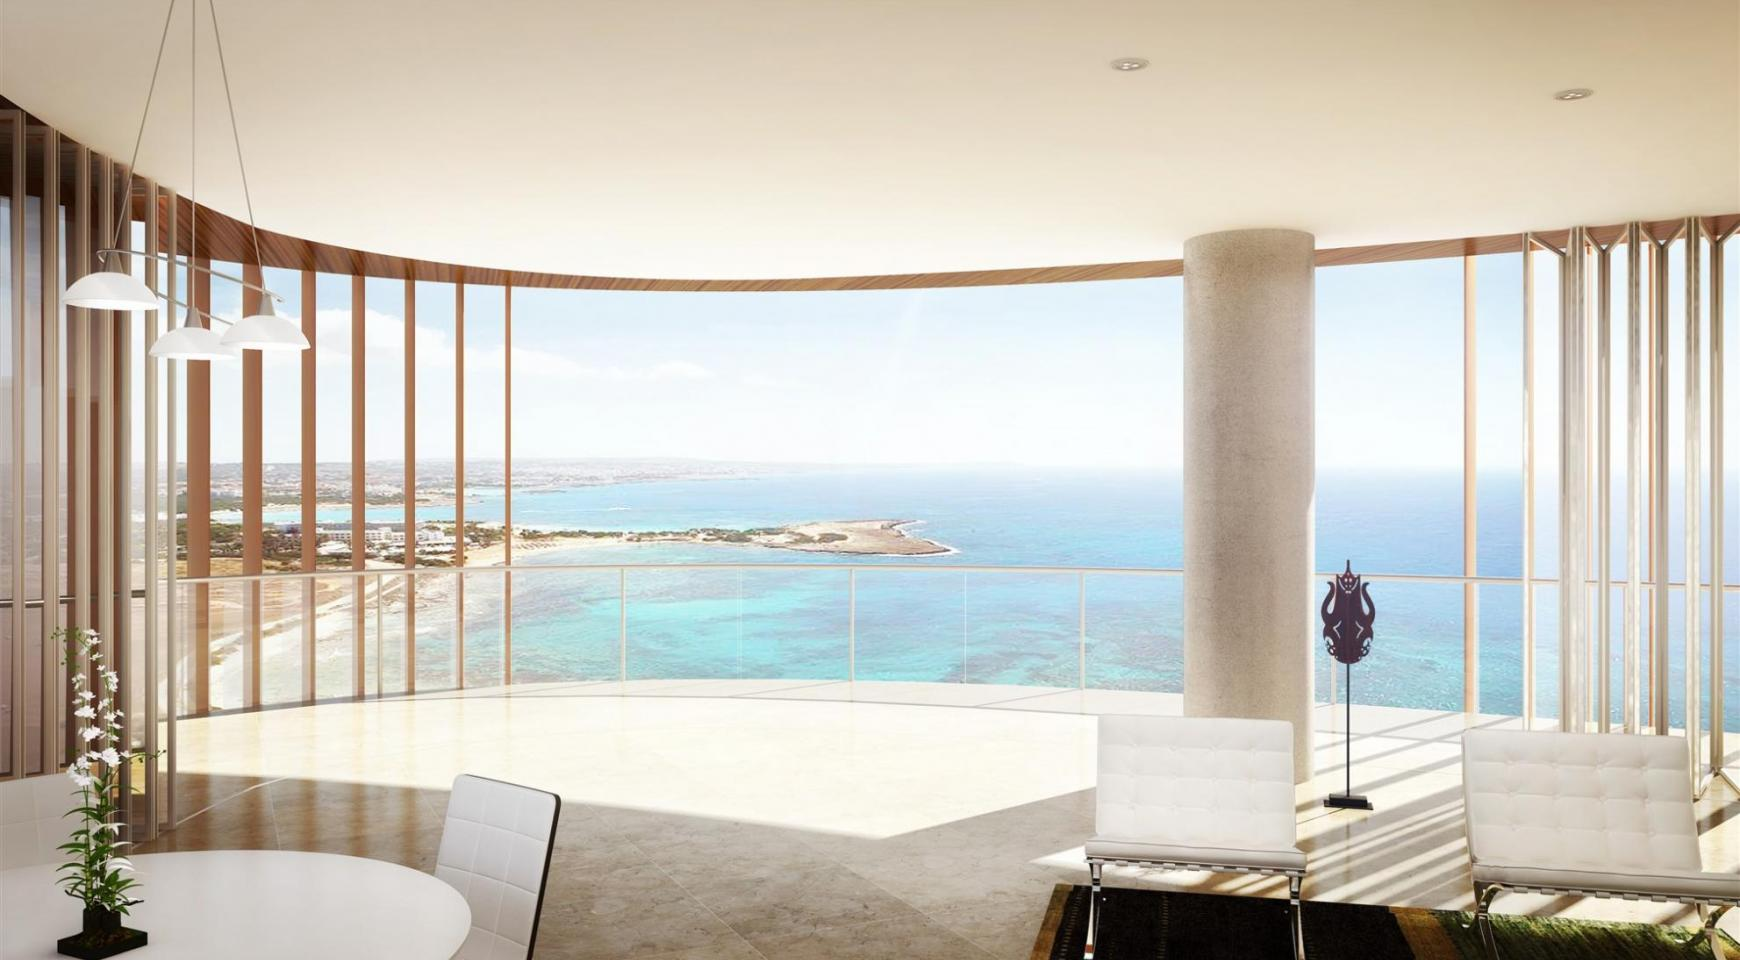 4 Bedroom Apartment in an Exclusive Project by the Sea - 22